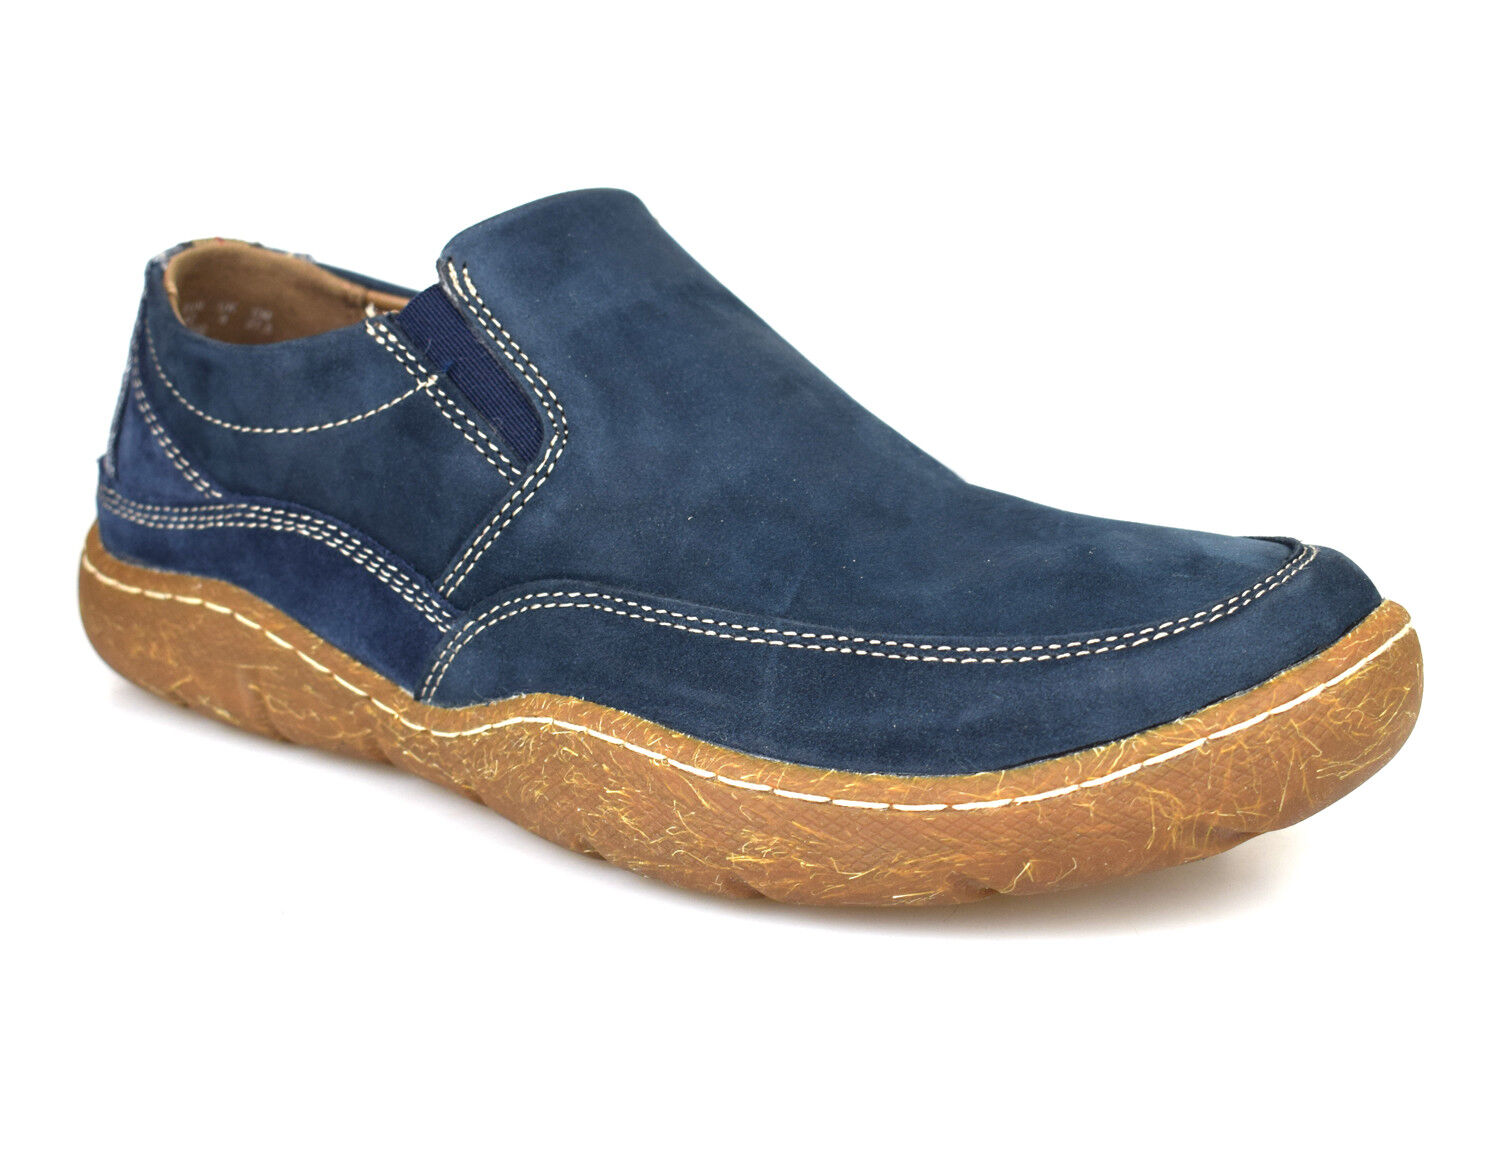 Hush Slip Puppies Sway Navy Navy Navy Nubuck Leder Casual Slip Hush On Schuhes ... 50e7d7